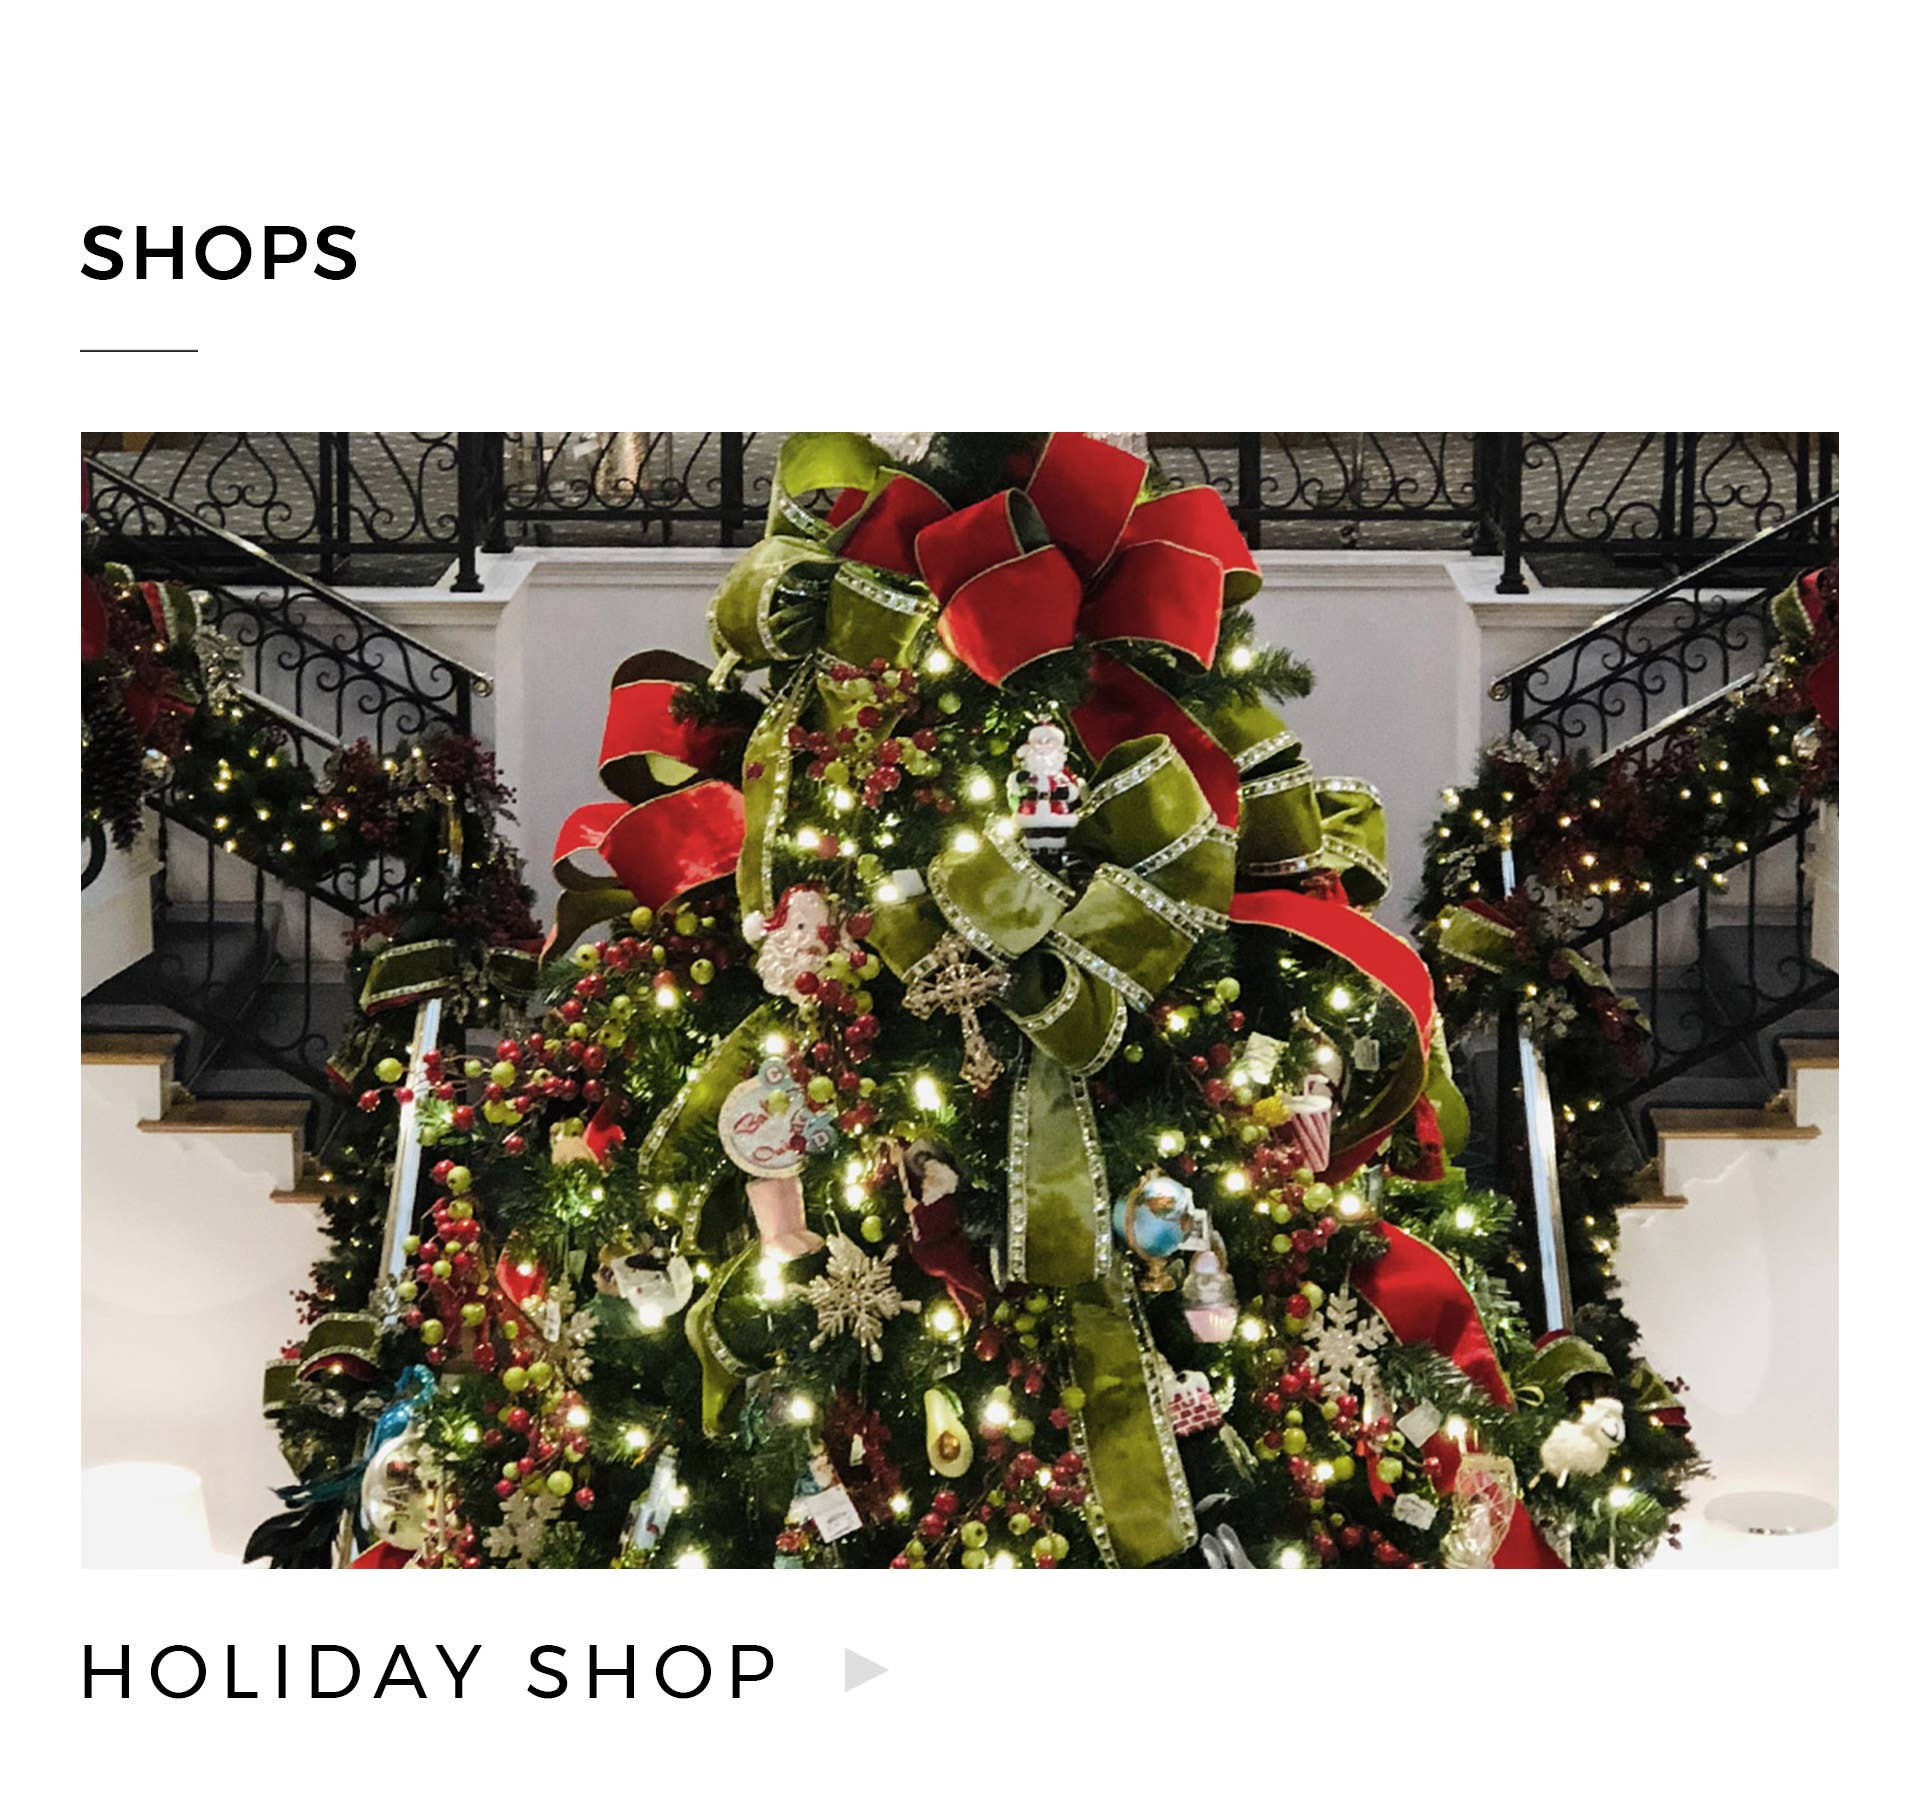 Shop our holiday gifts, including Christmas, Hanukkah and ornament favorites!